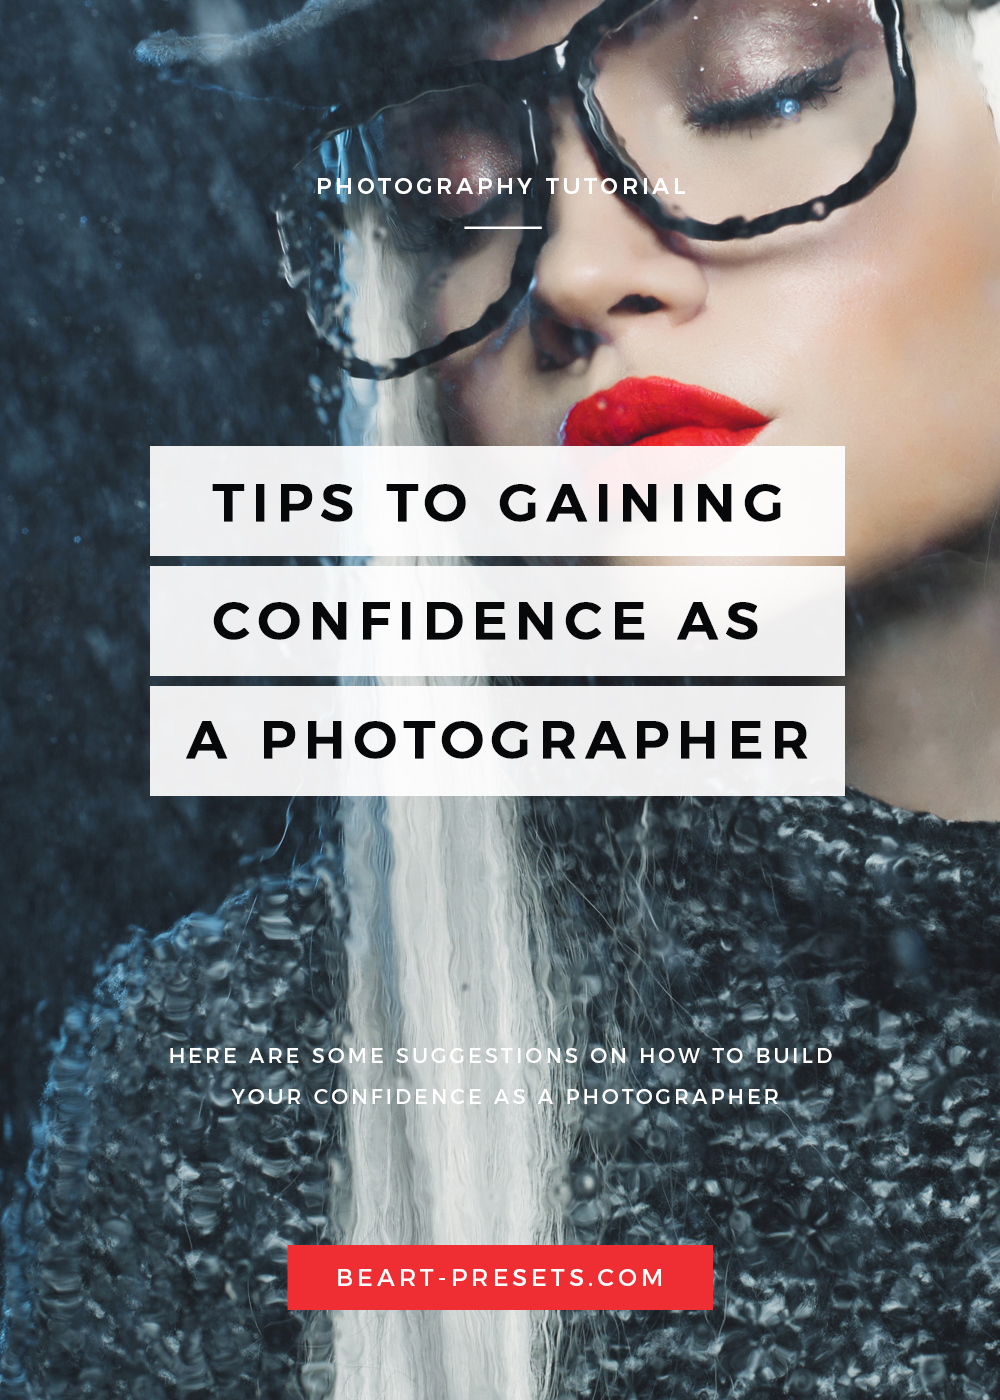 Gaining Confidence as a Photographer